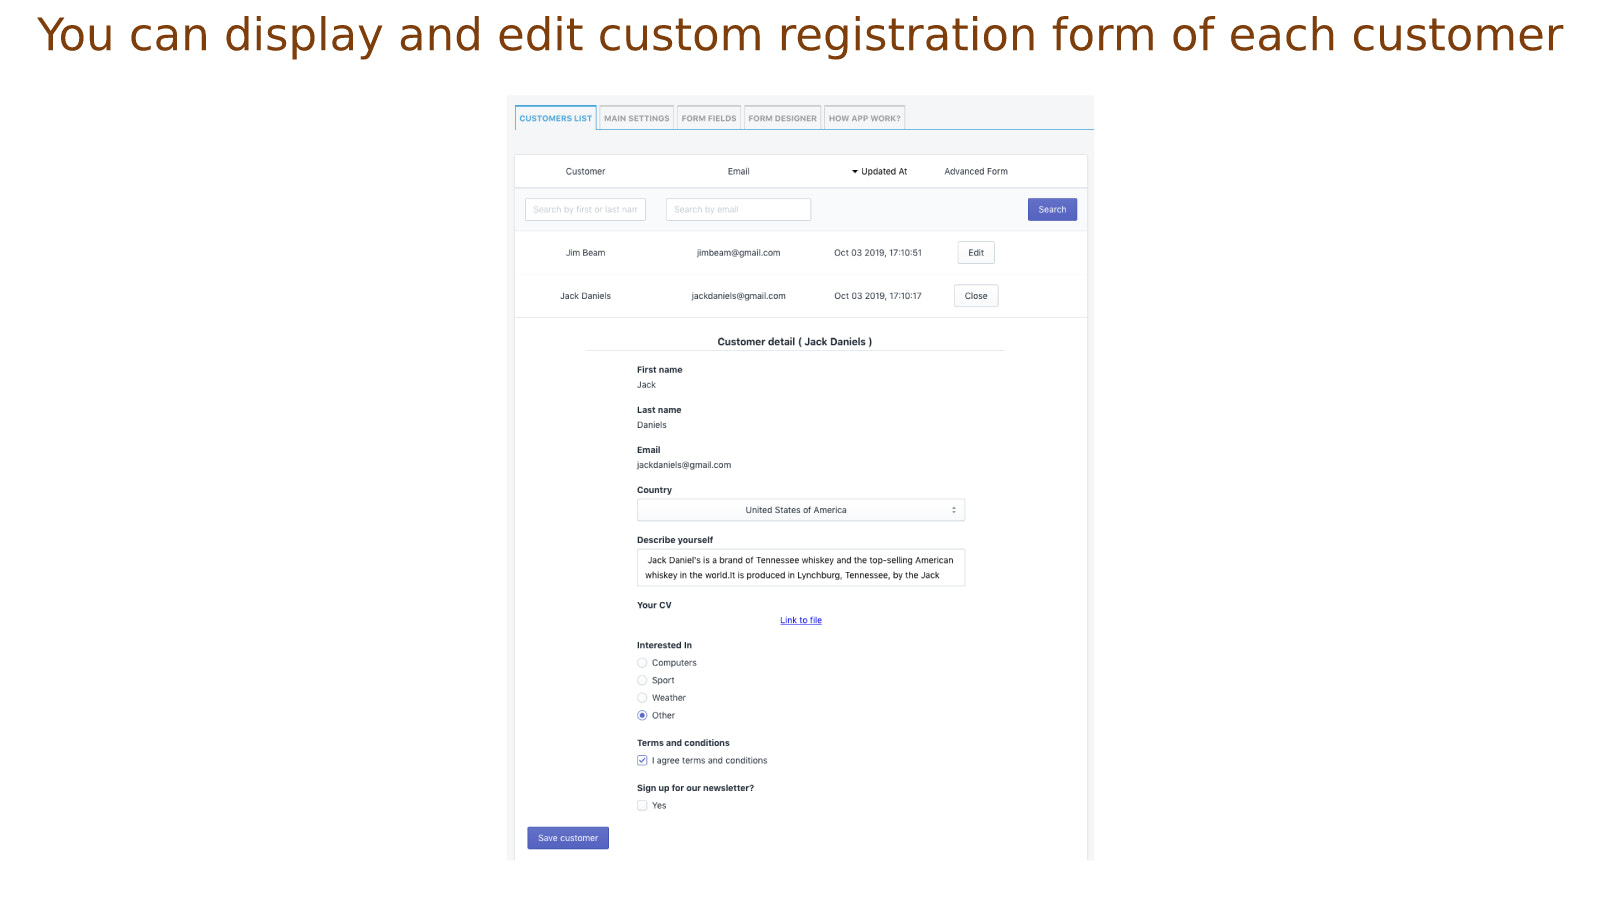 You can edit customer registration form for each customer